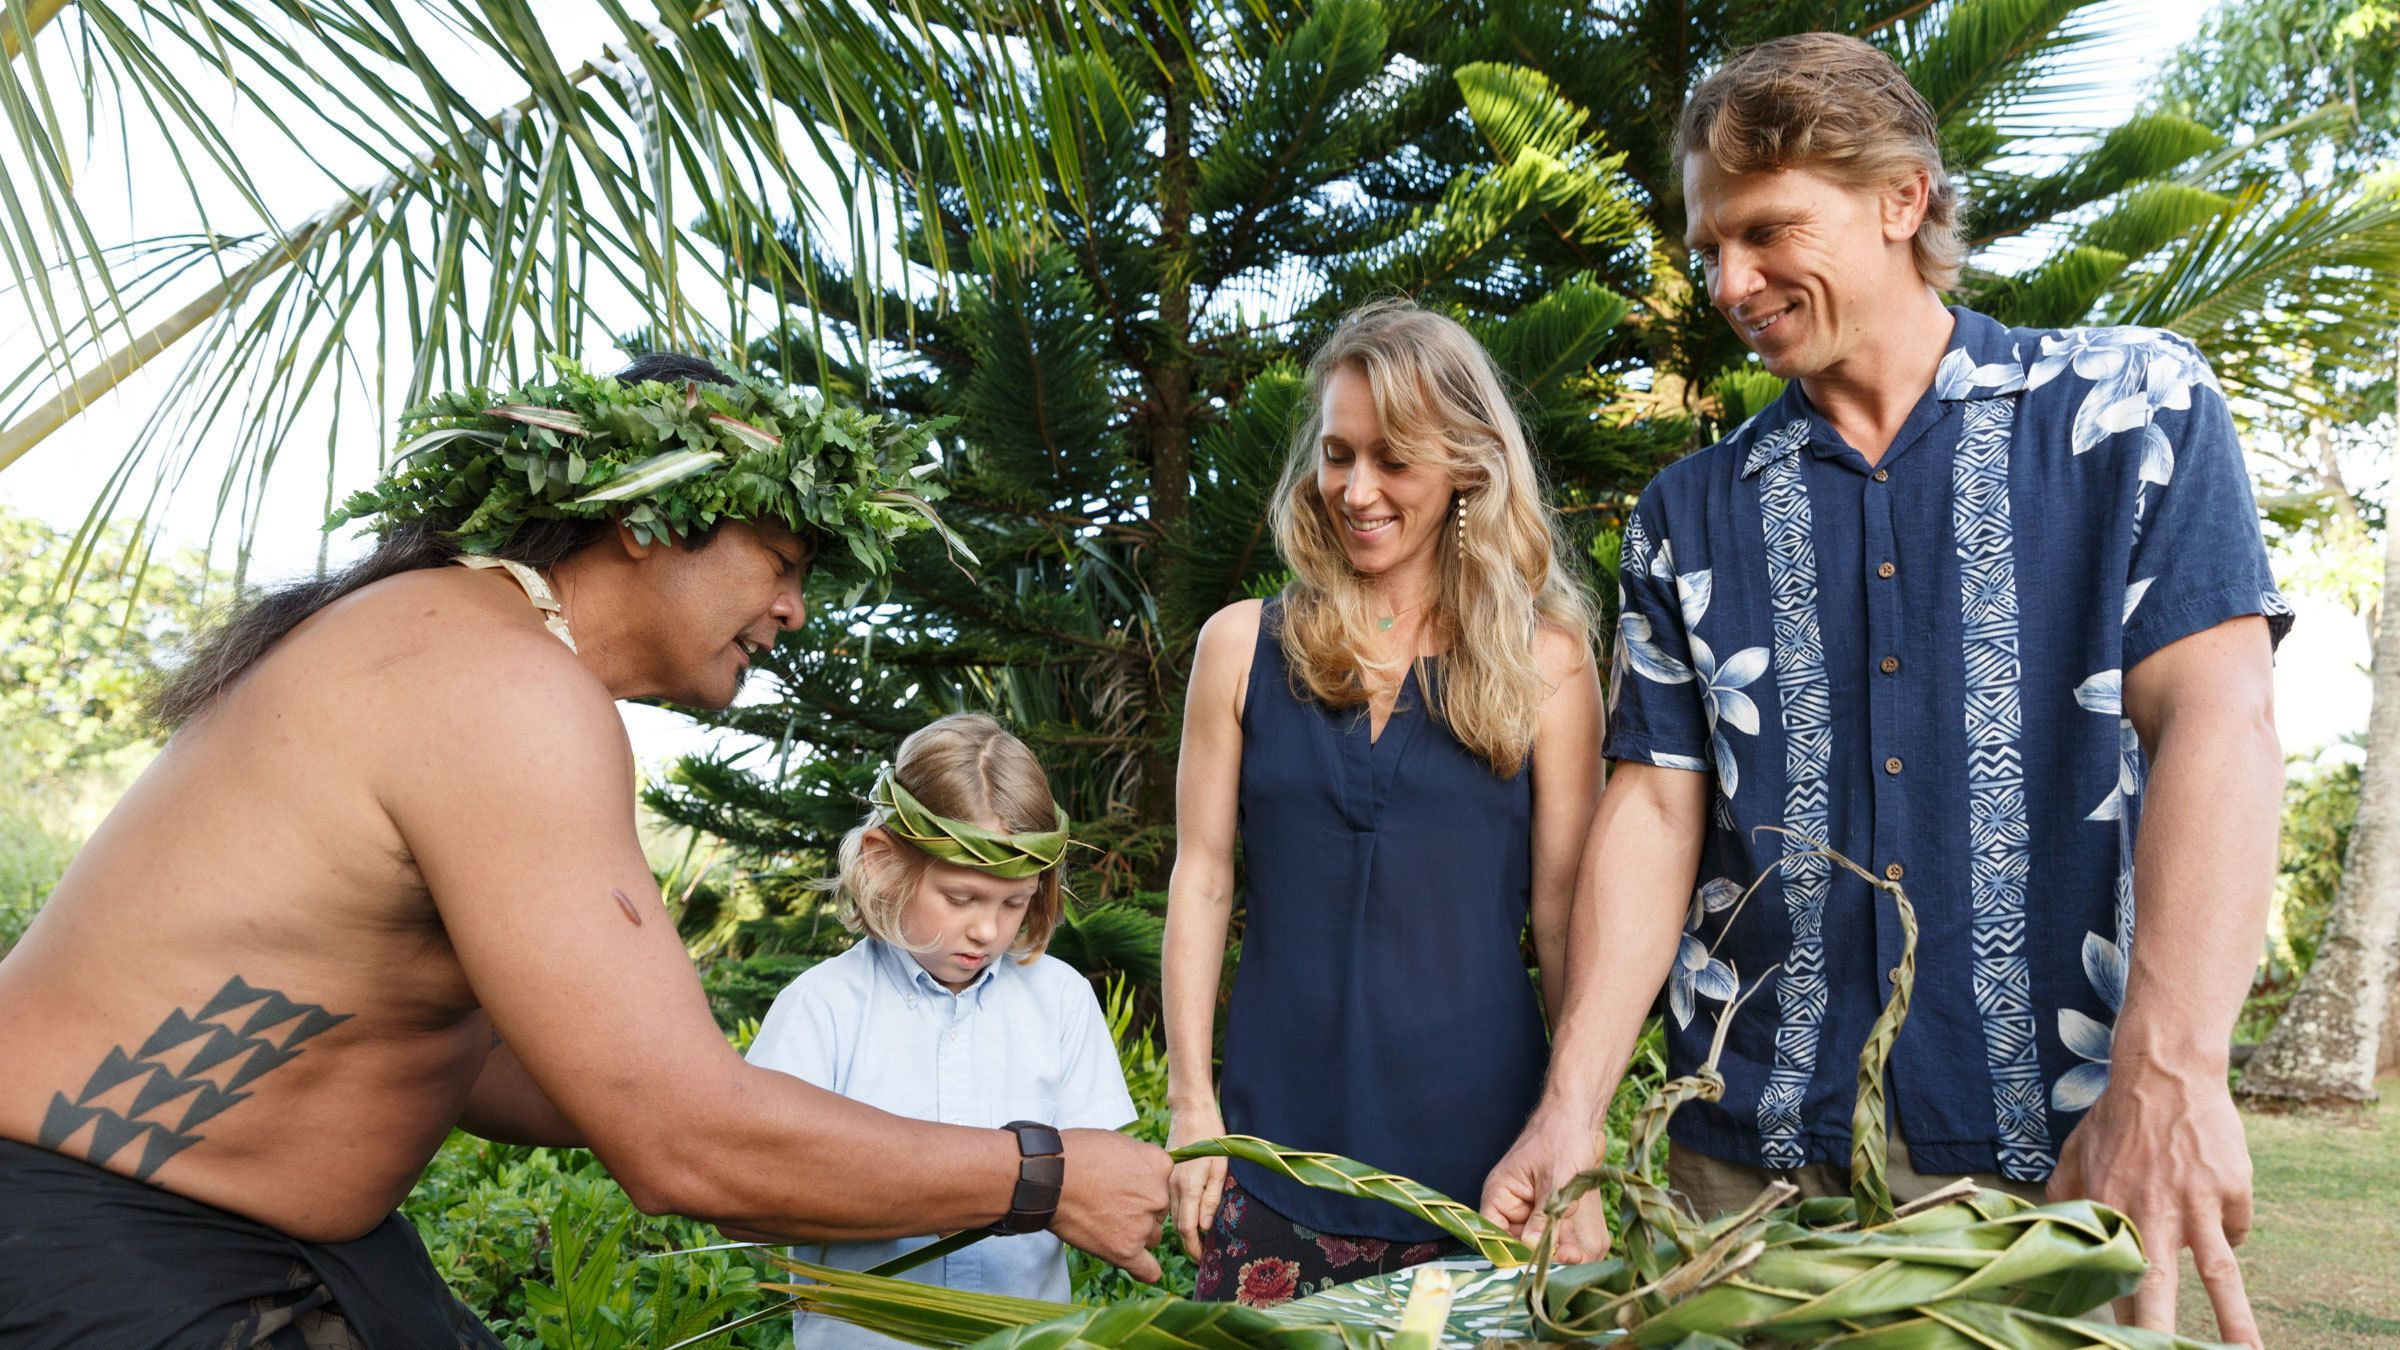 man instructing young boy in how to weave palm leaves in Kauai